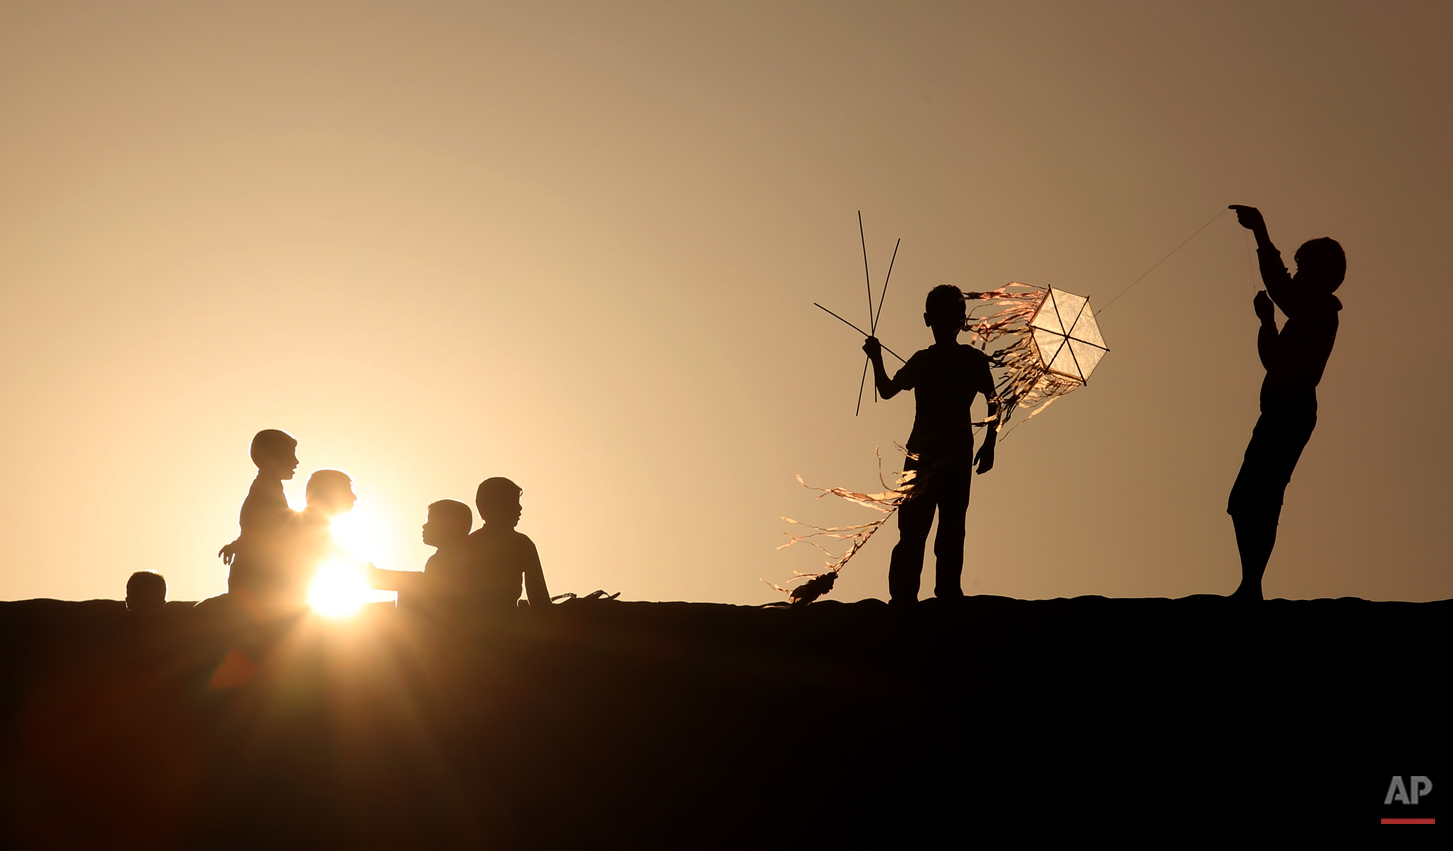 Palestinian children fly kites and sit watching the sunset n Khan Younis, a town and refugee camp in the southern Gaza Strip, Friday, Feb. 28, 2014. (AP Photo/Hatem Moussa)